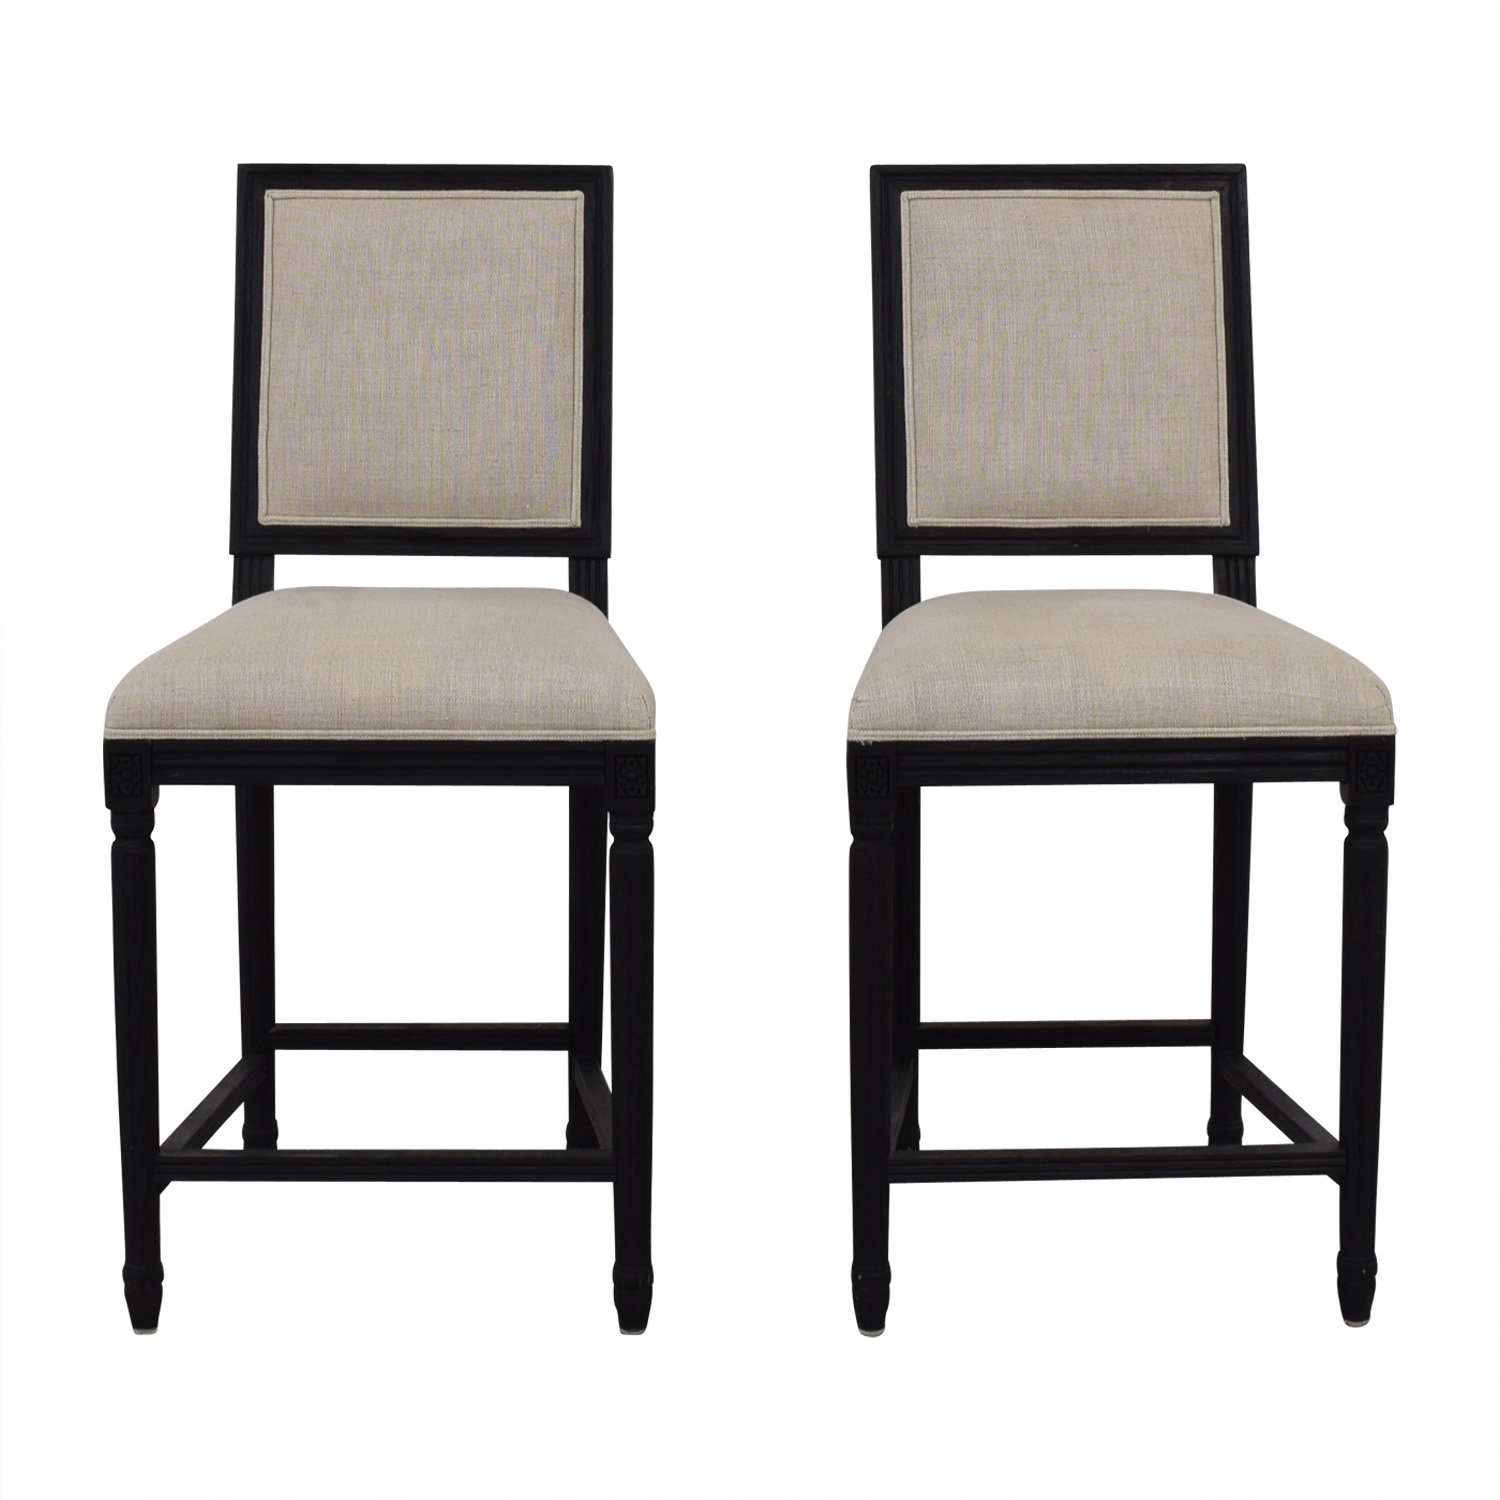 shop Restoration Hardware Beige Upholstered Black Stools Restoration hardware